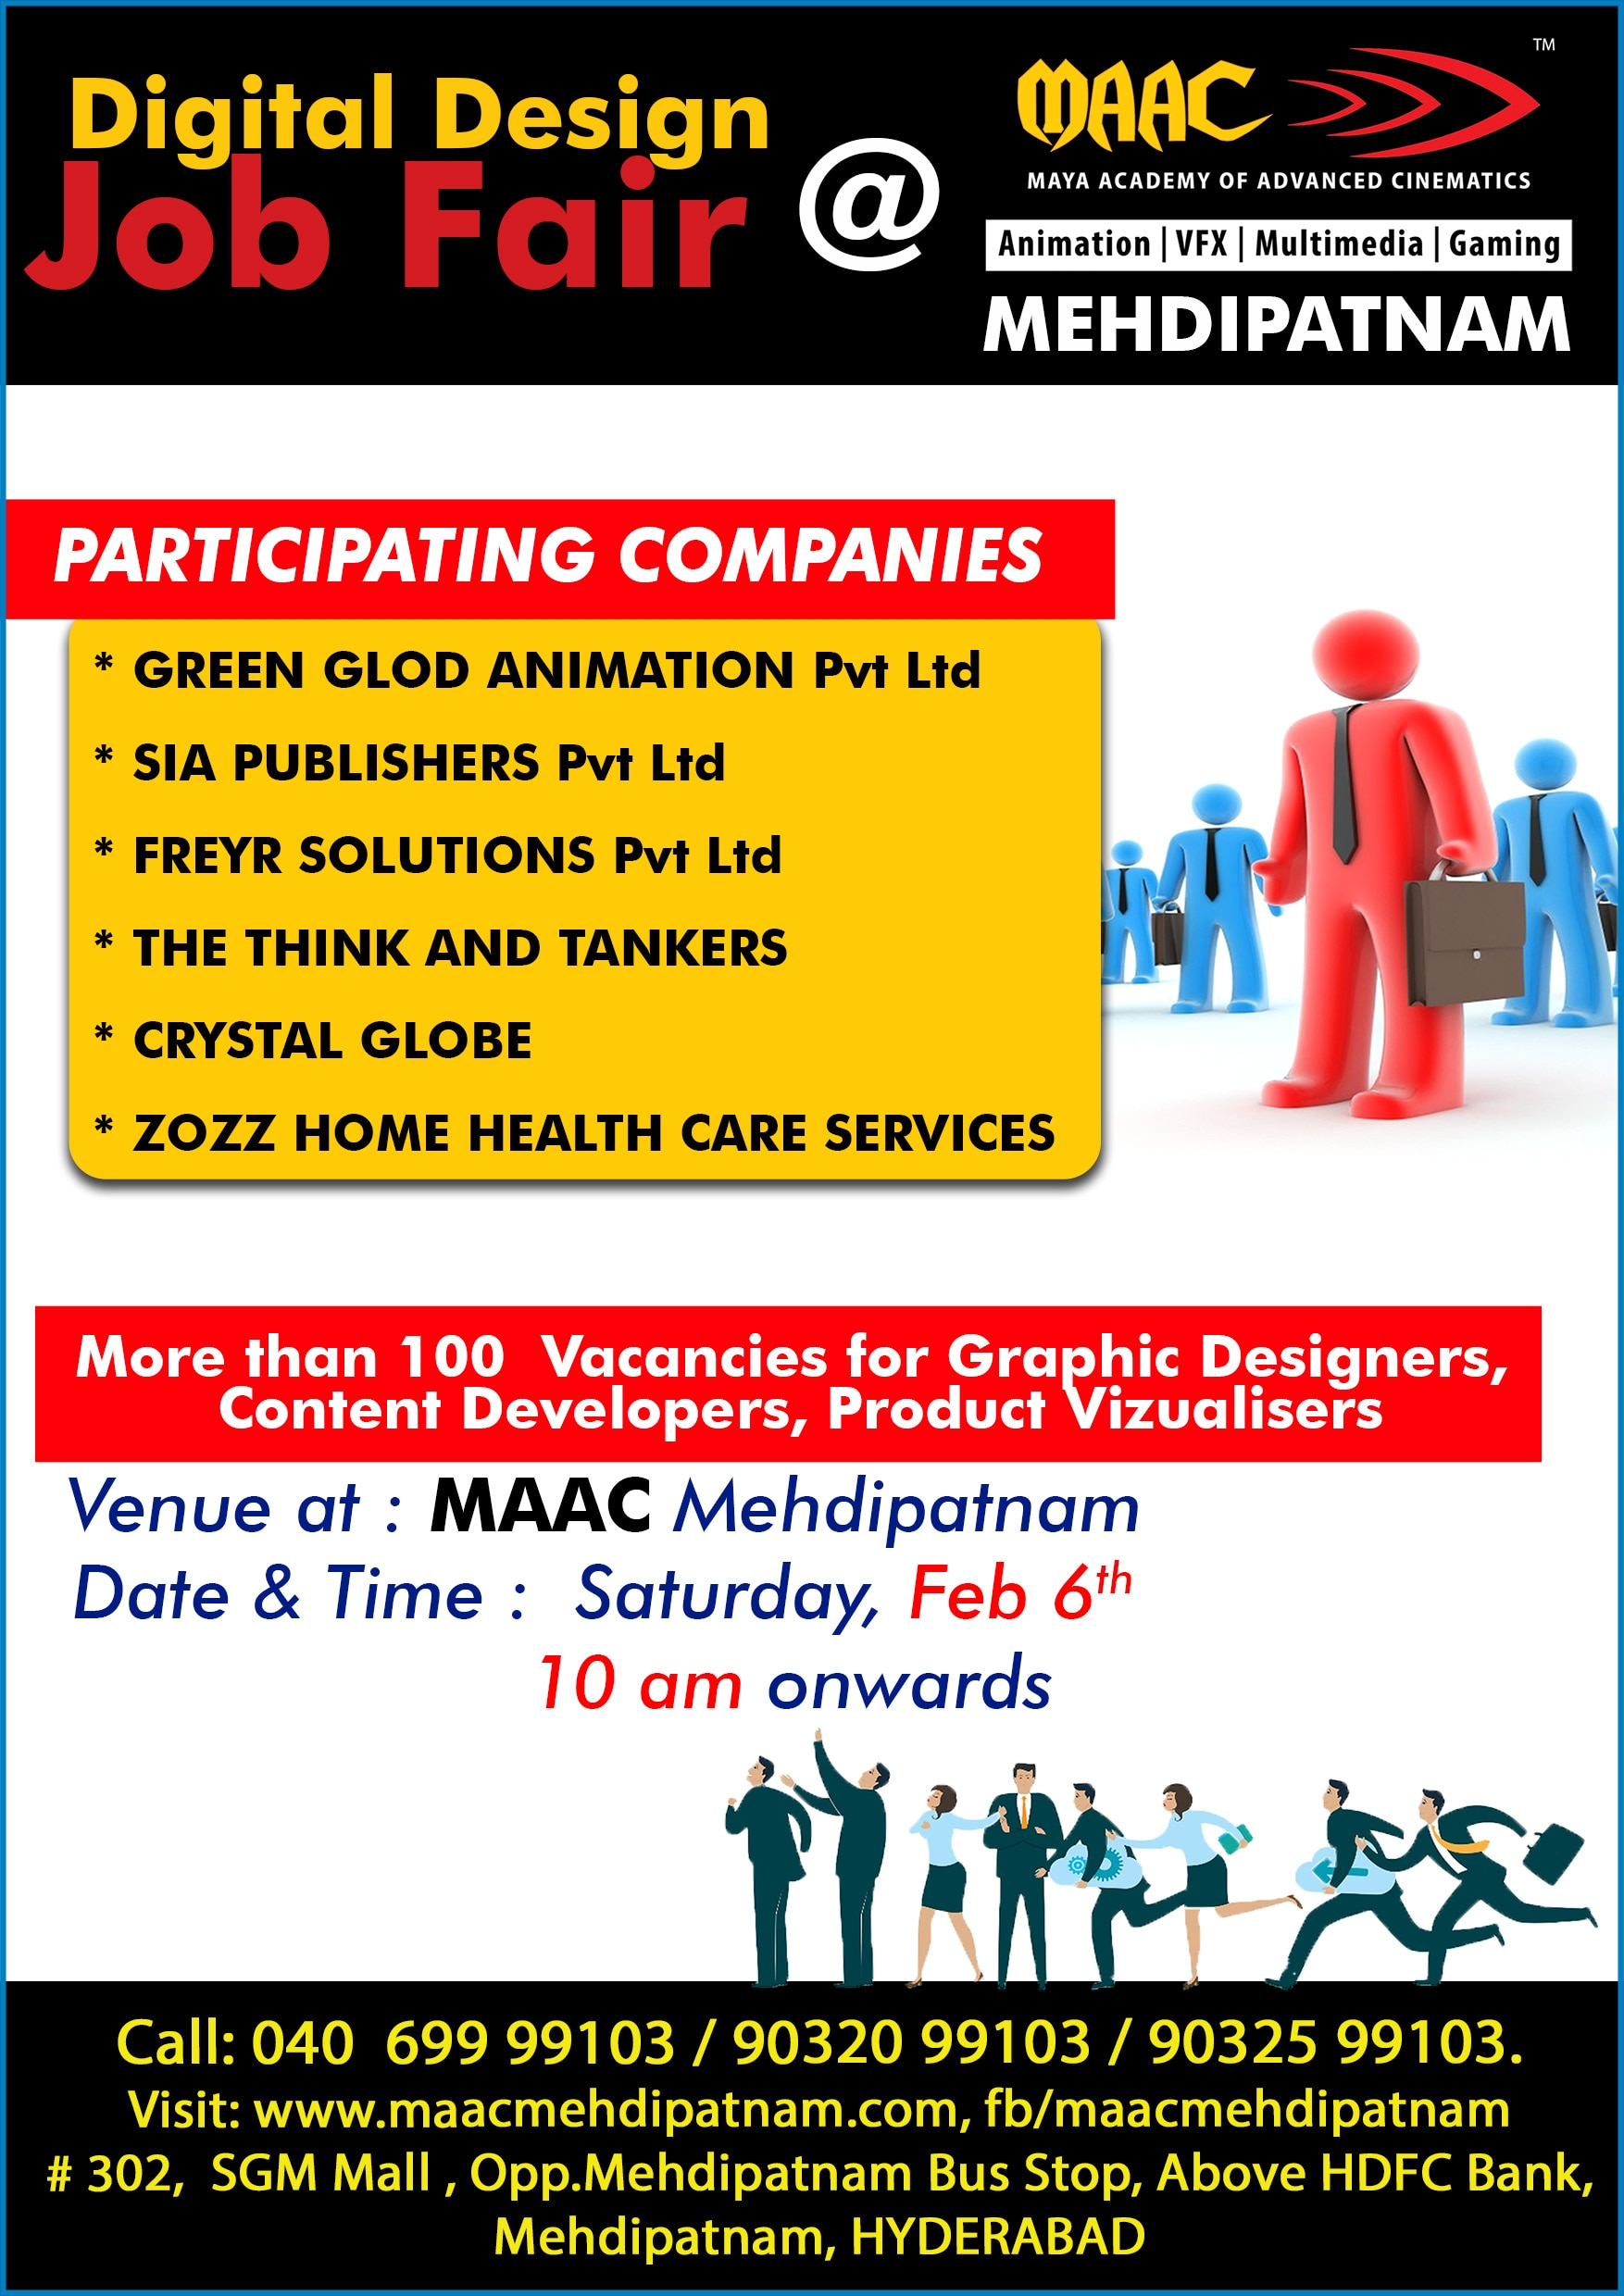 Job Fair at MAAC Mehdipatnam More than 100  Vacancies for Graphic Designers,  Content Developers, Product Vizualisers. participating companies: * green glod animation Pvt Ltd  * sia publishers pvt Ltd * Freyr solutions Pvt Ltd * The think and tankers * Crystal globe  * Zozz Home Health Care Services